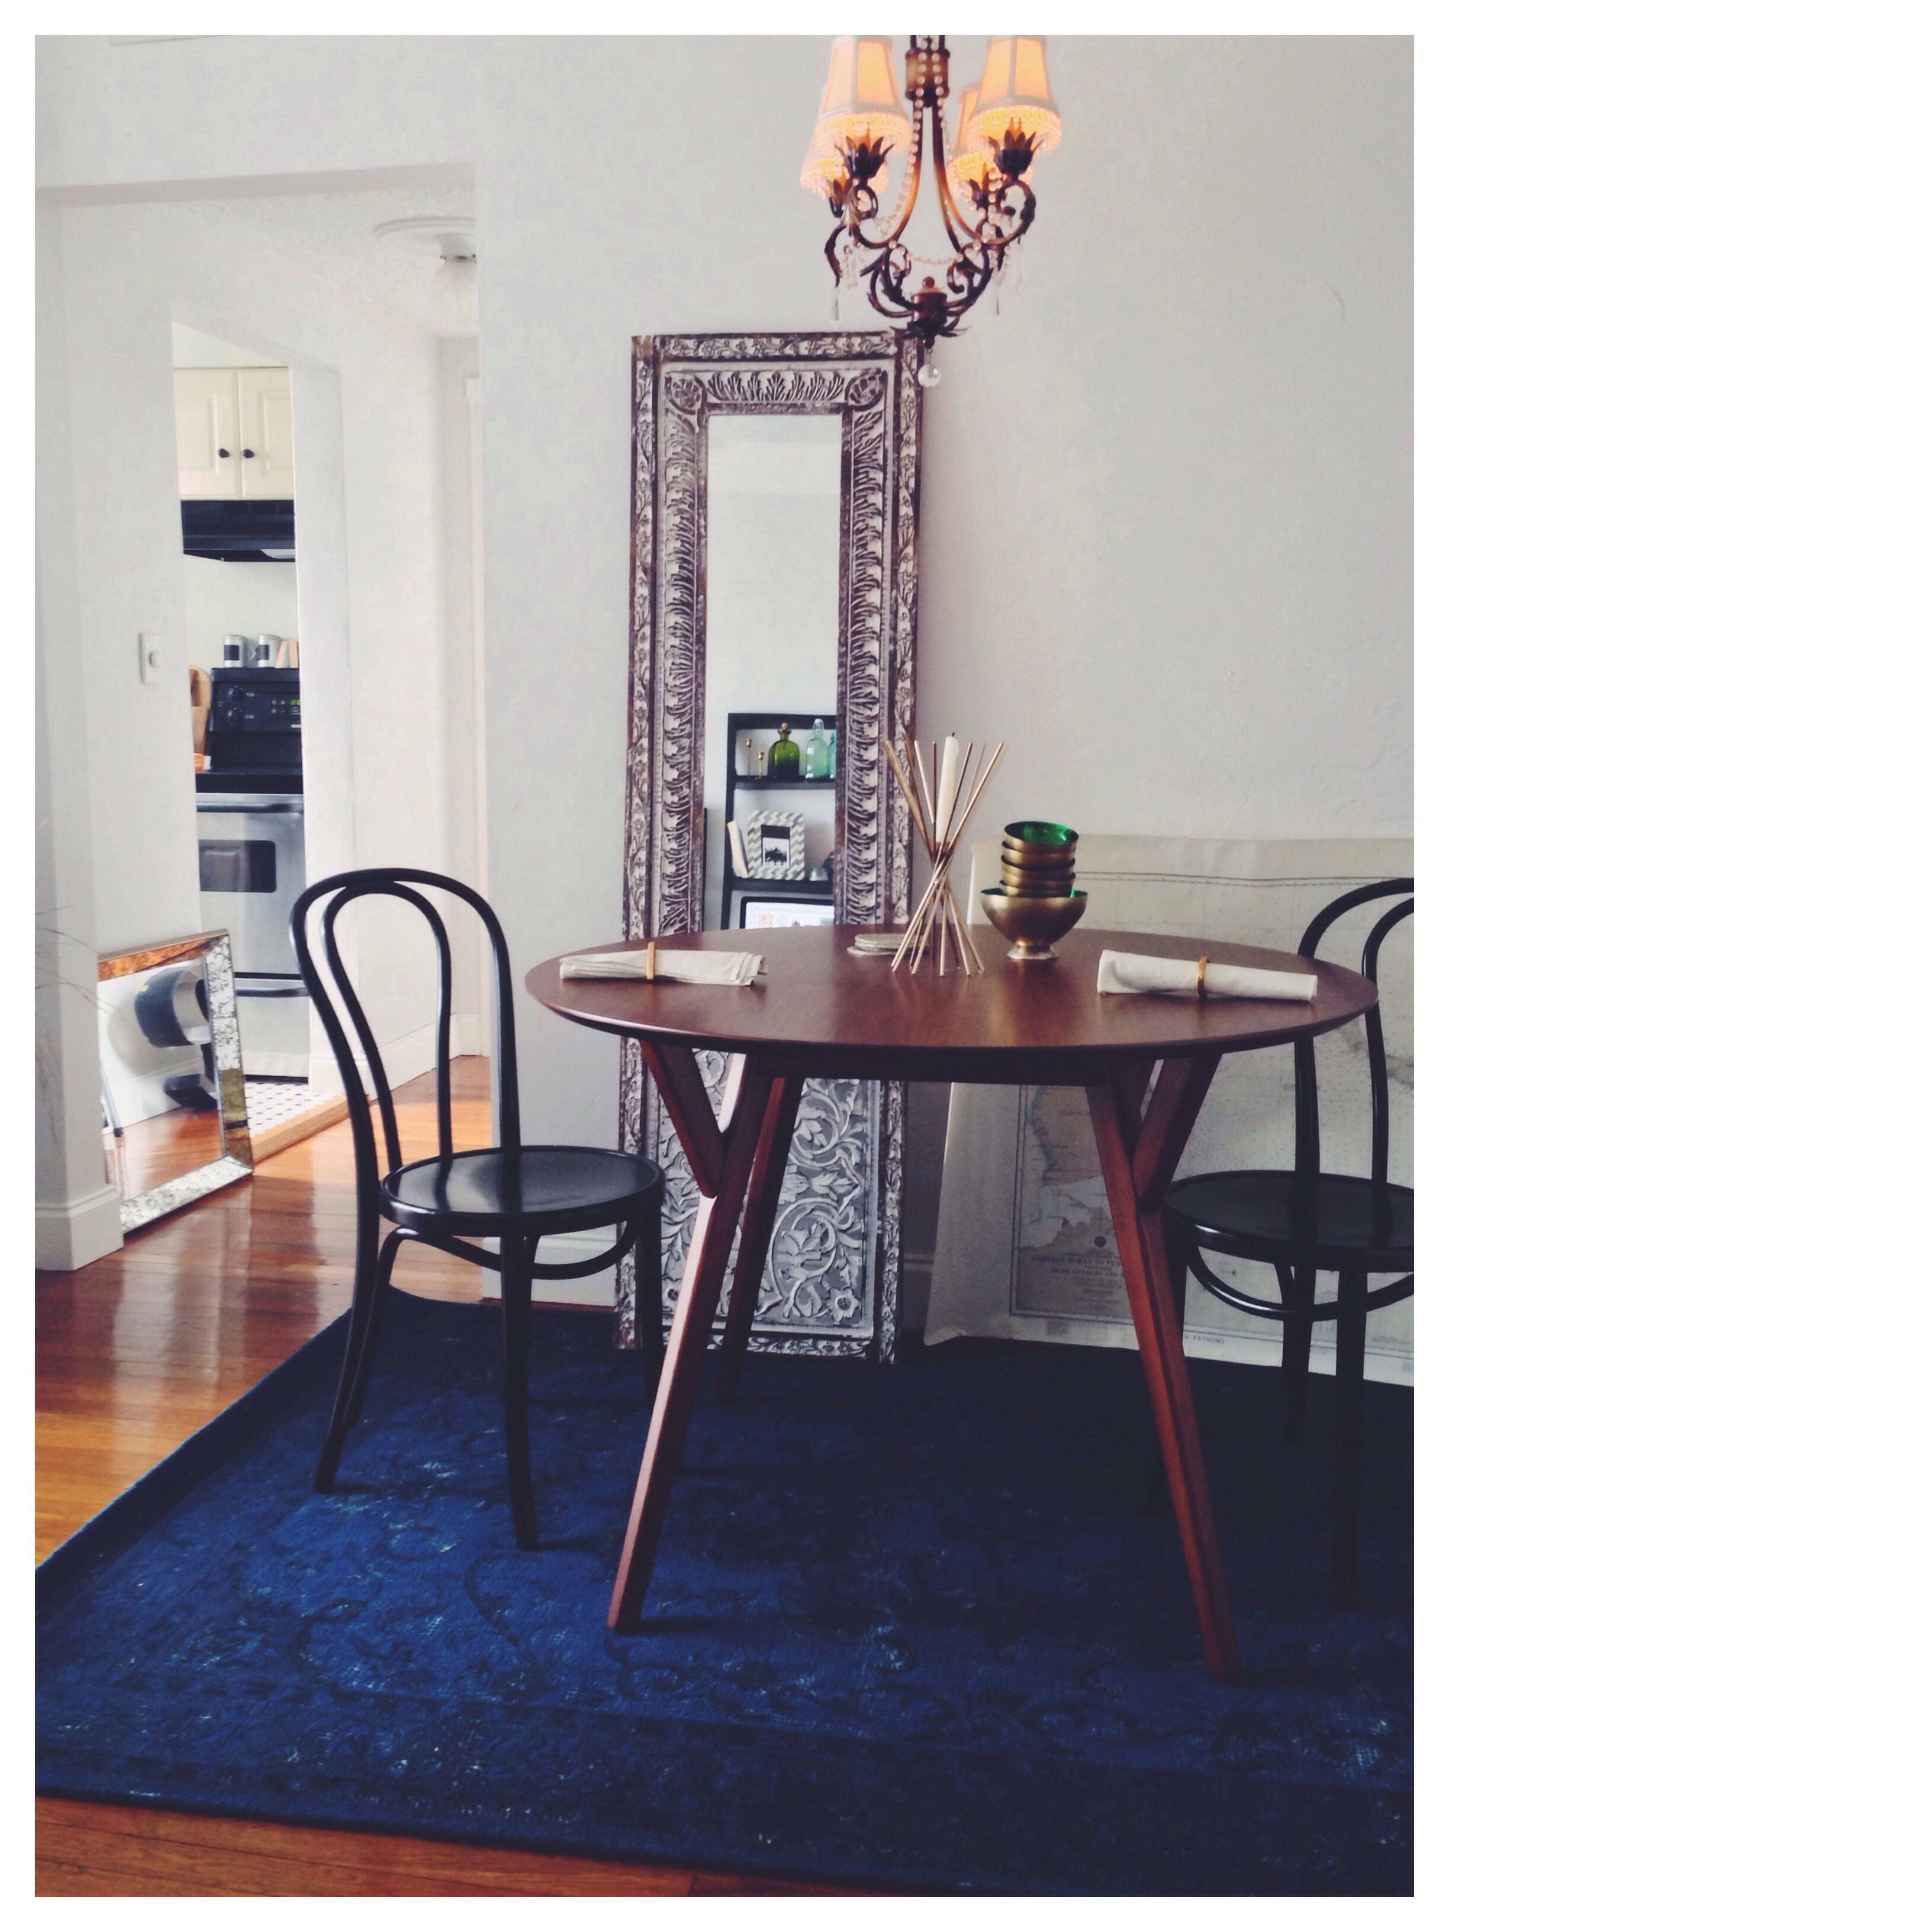 My Current Dining Room Bursa Wool Rug Parker Table Westelm Vienna Chairs Crateandbarrel Mirrors Homegoods Modern Furniture Dining Table Table